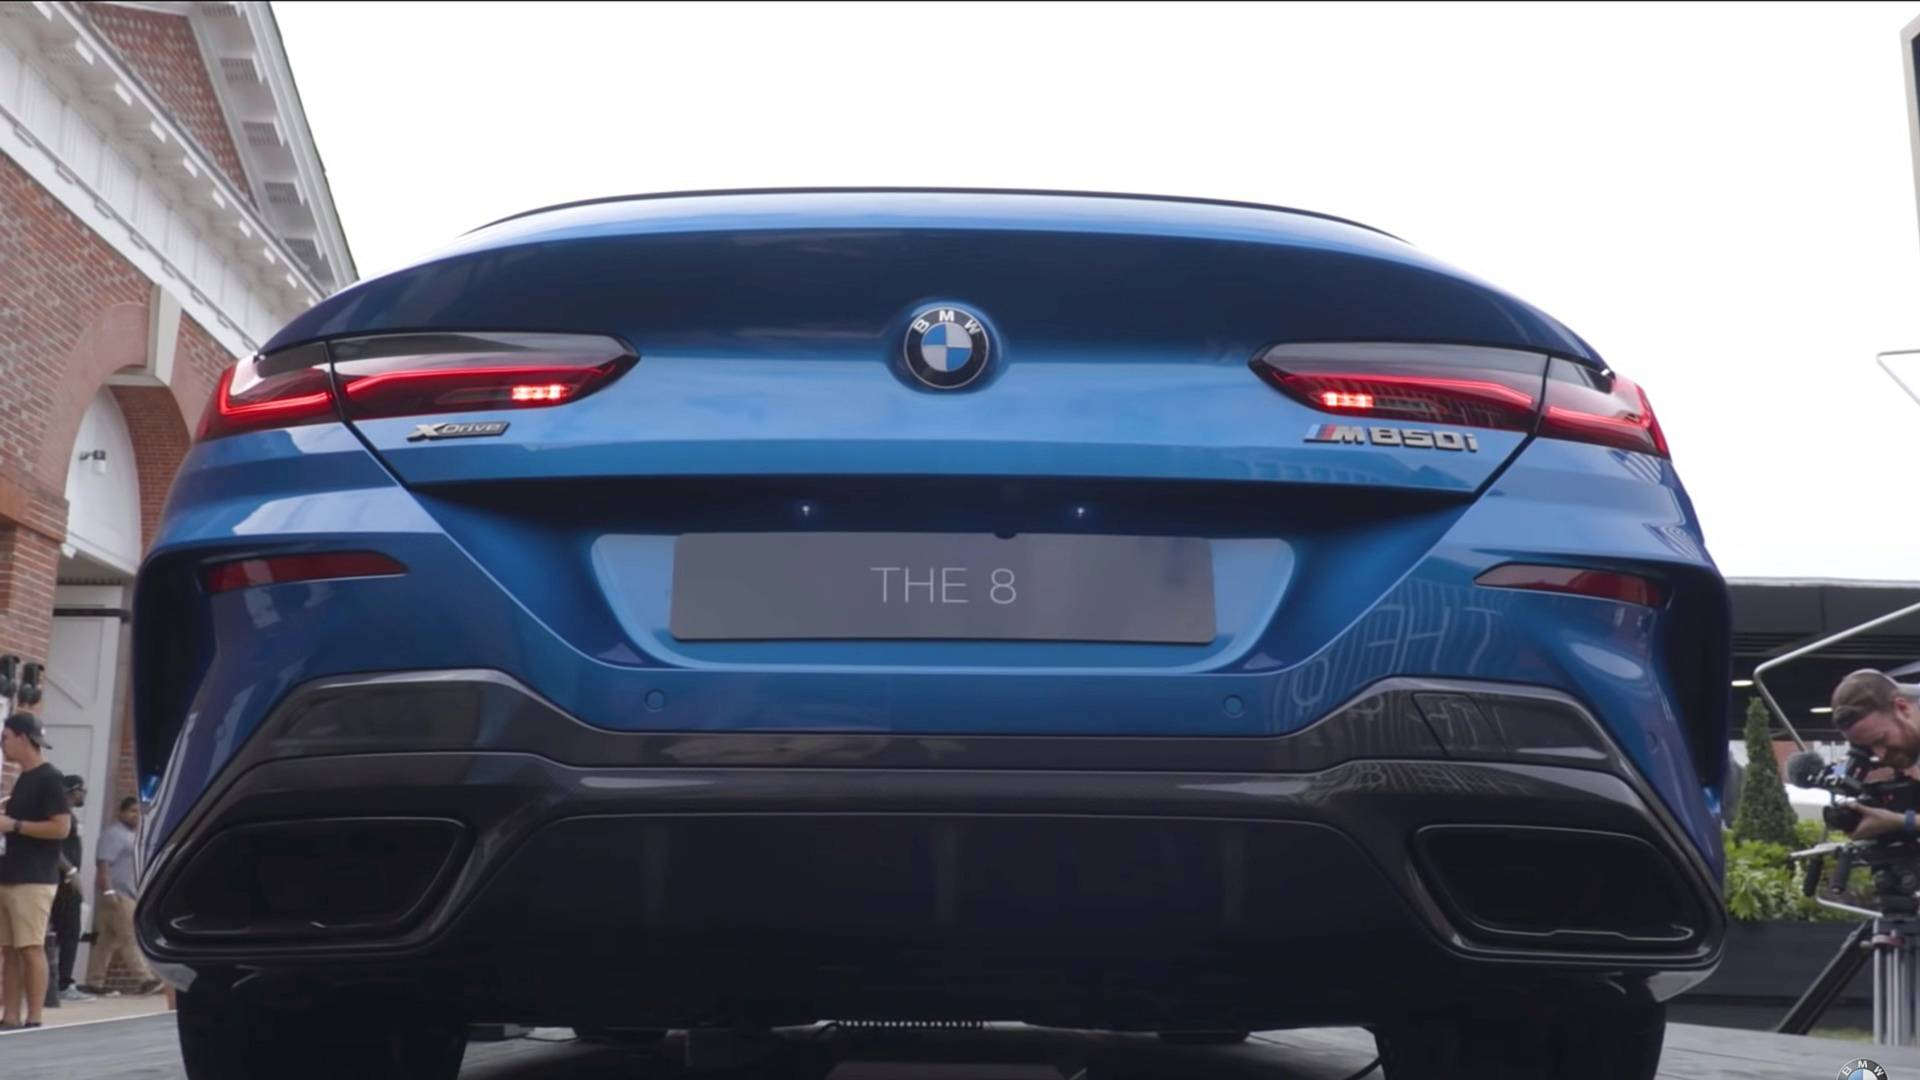 Get Up Close And Personal With BMW 8 Series In New Video